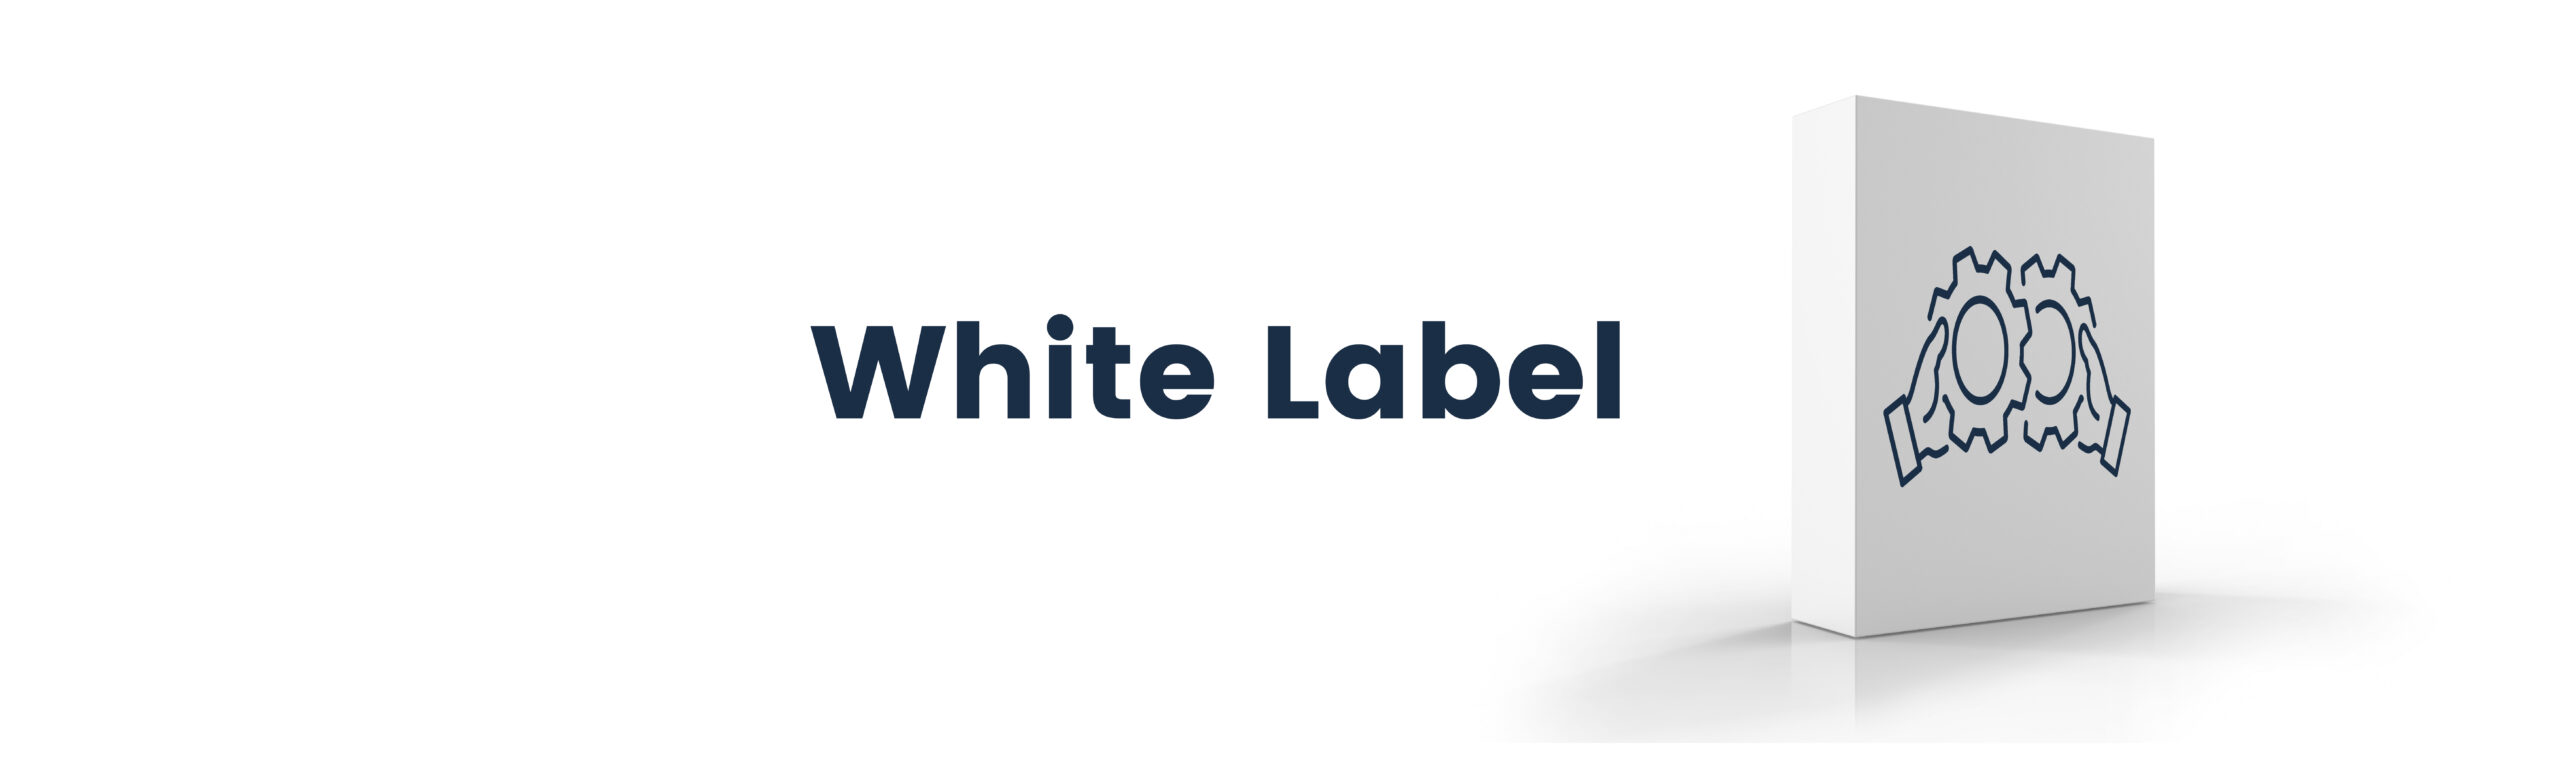 white label vessel tracking software